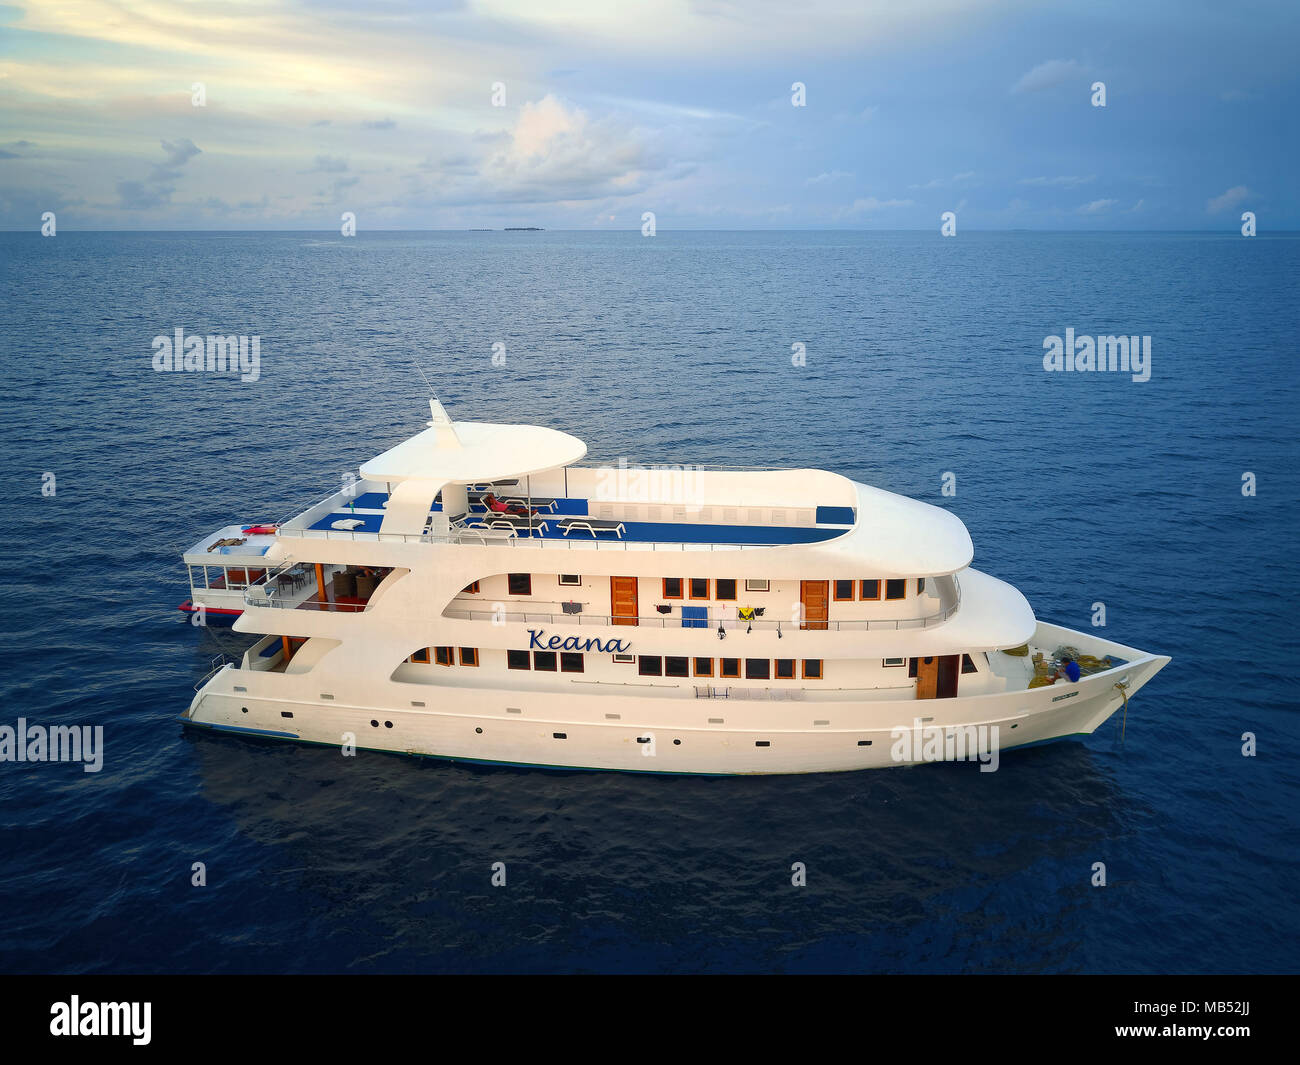 Diving safari ship MS Keana, Ari-Atoll, Indian Ocean, Maldives - Stock Image